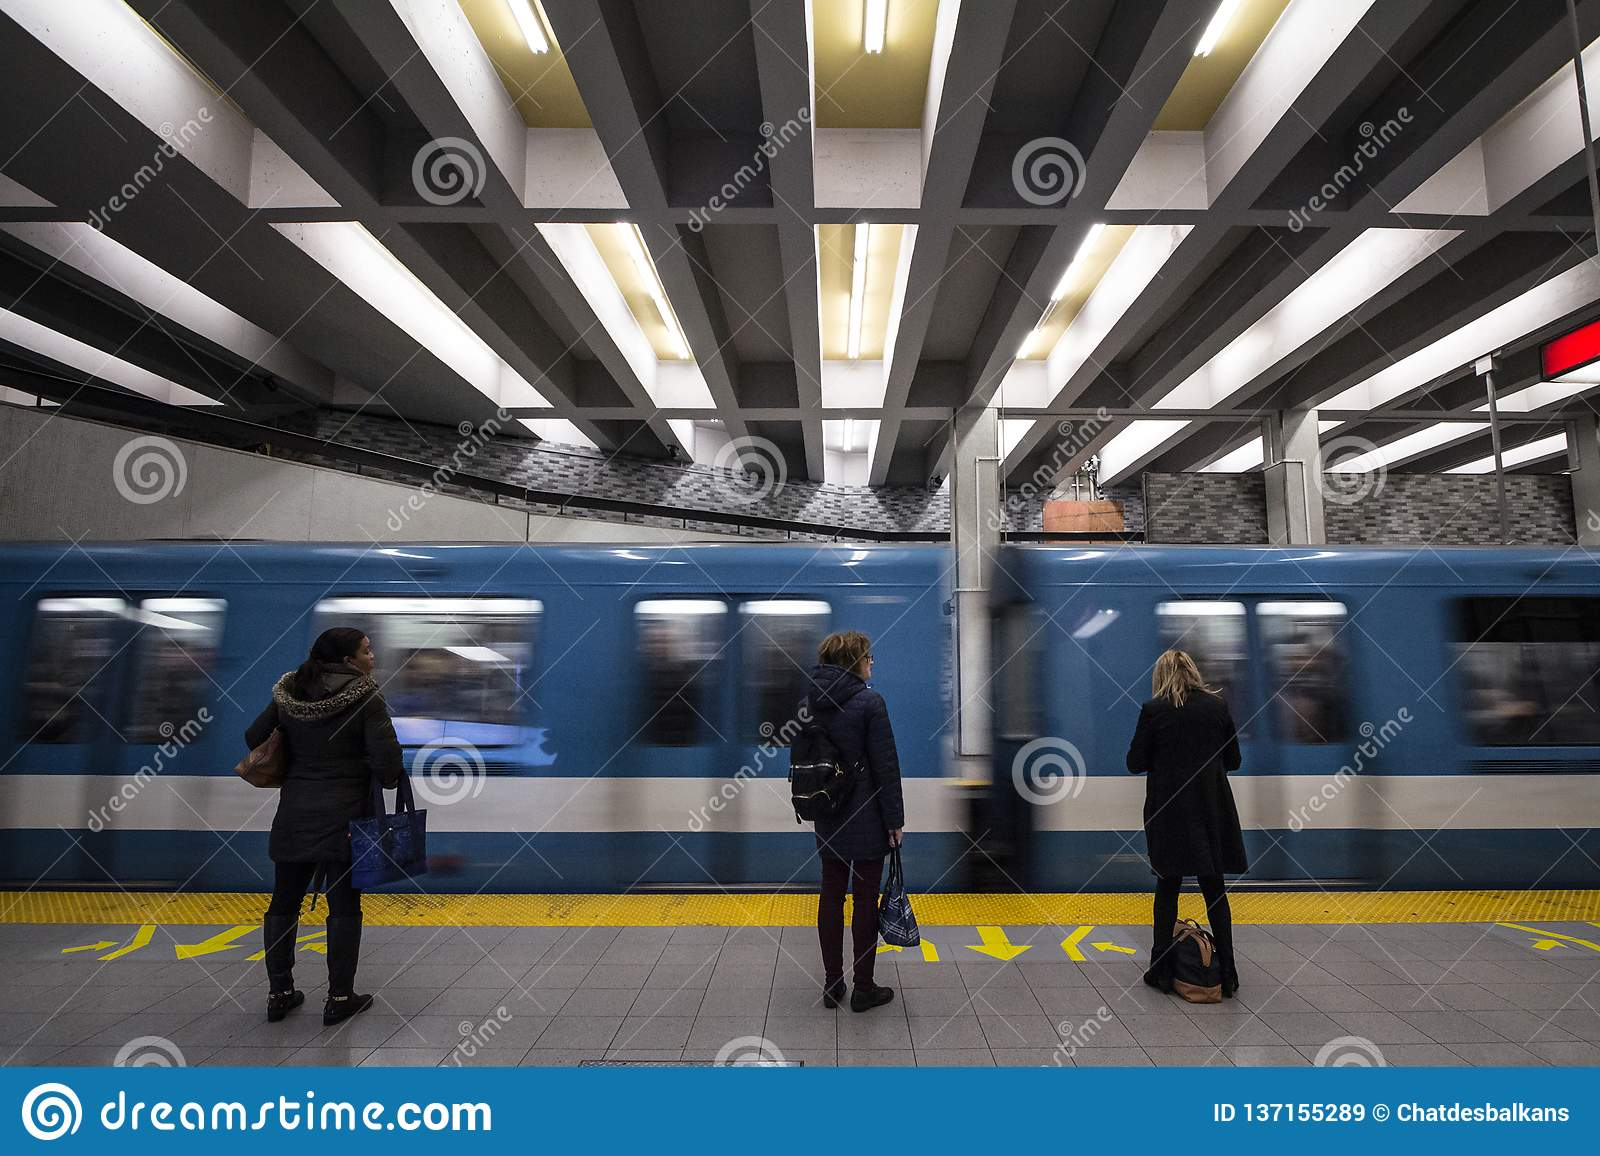 People waiting for a subway in Berri-UQAM station platform, green line, while a metro train is coming, with a speed blur